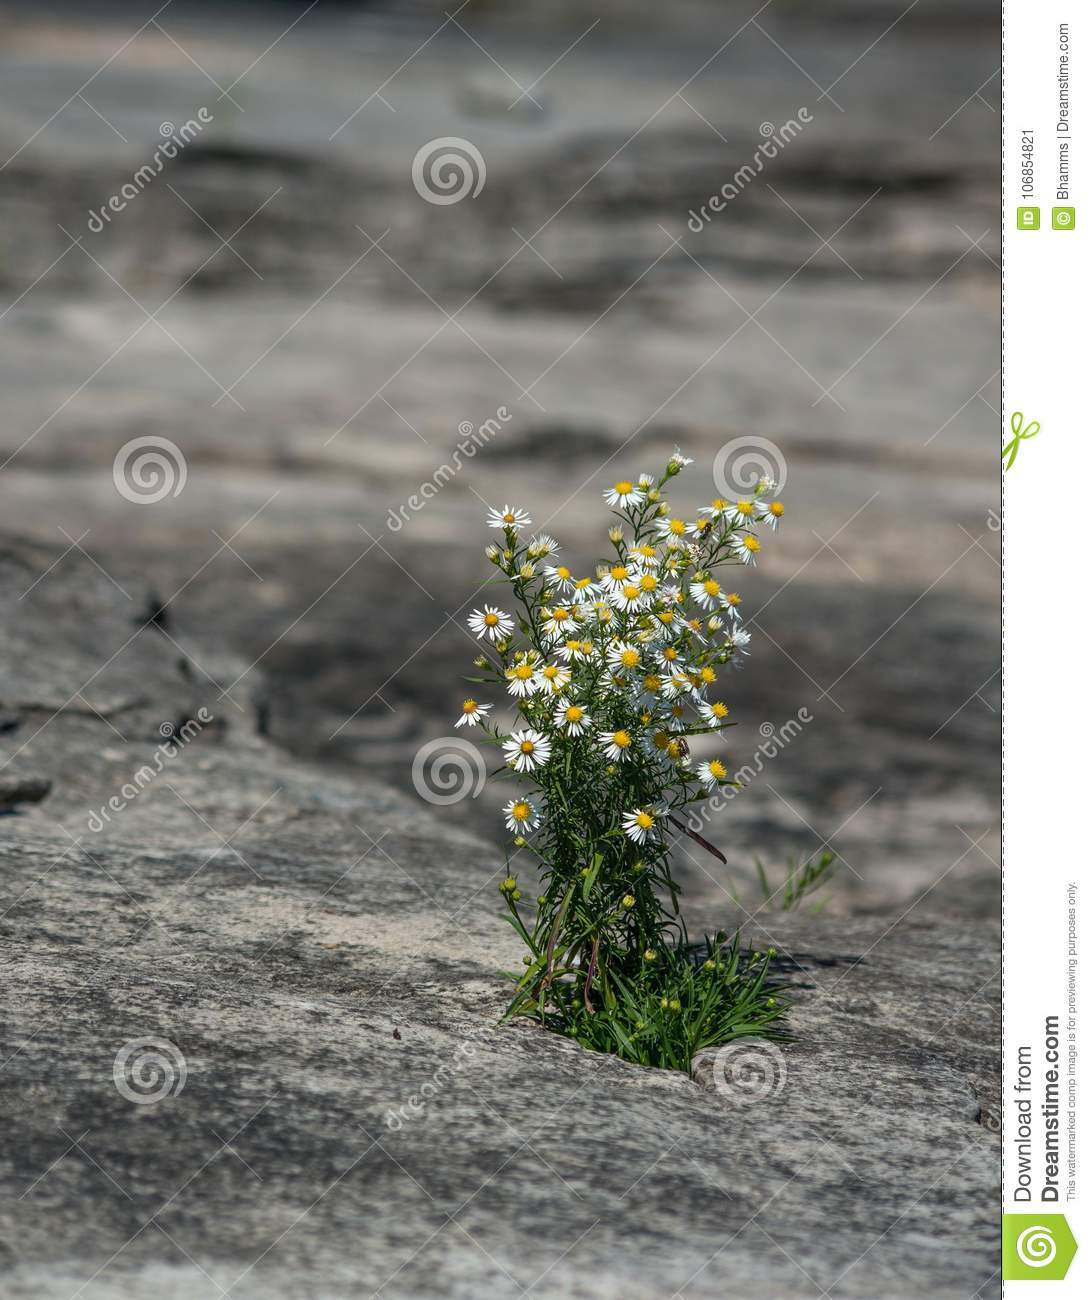 Tiny Daisy Like Flowers Growing From A Crack In A Rock Stock Image